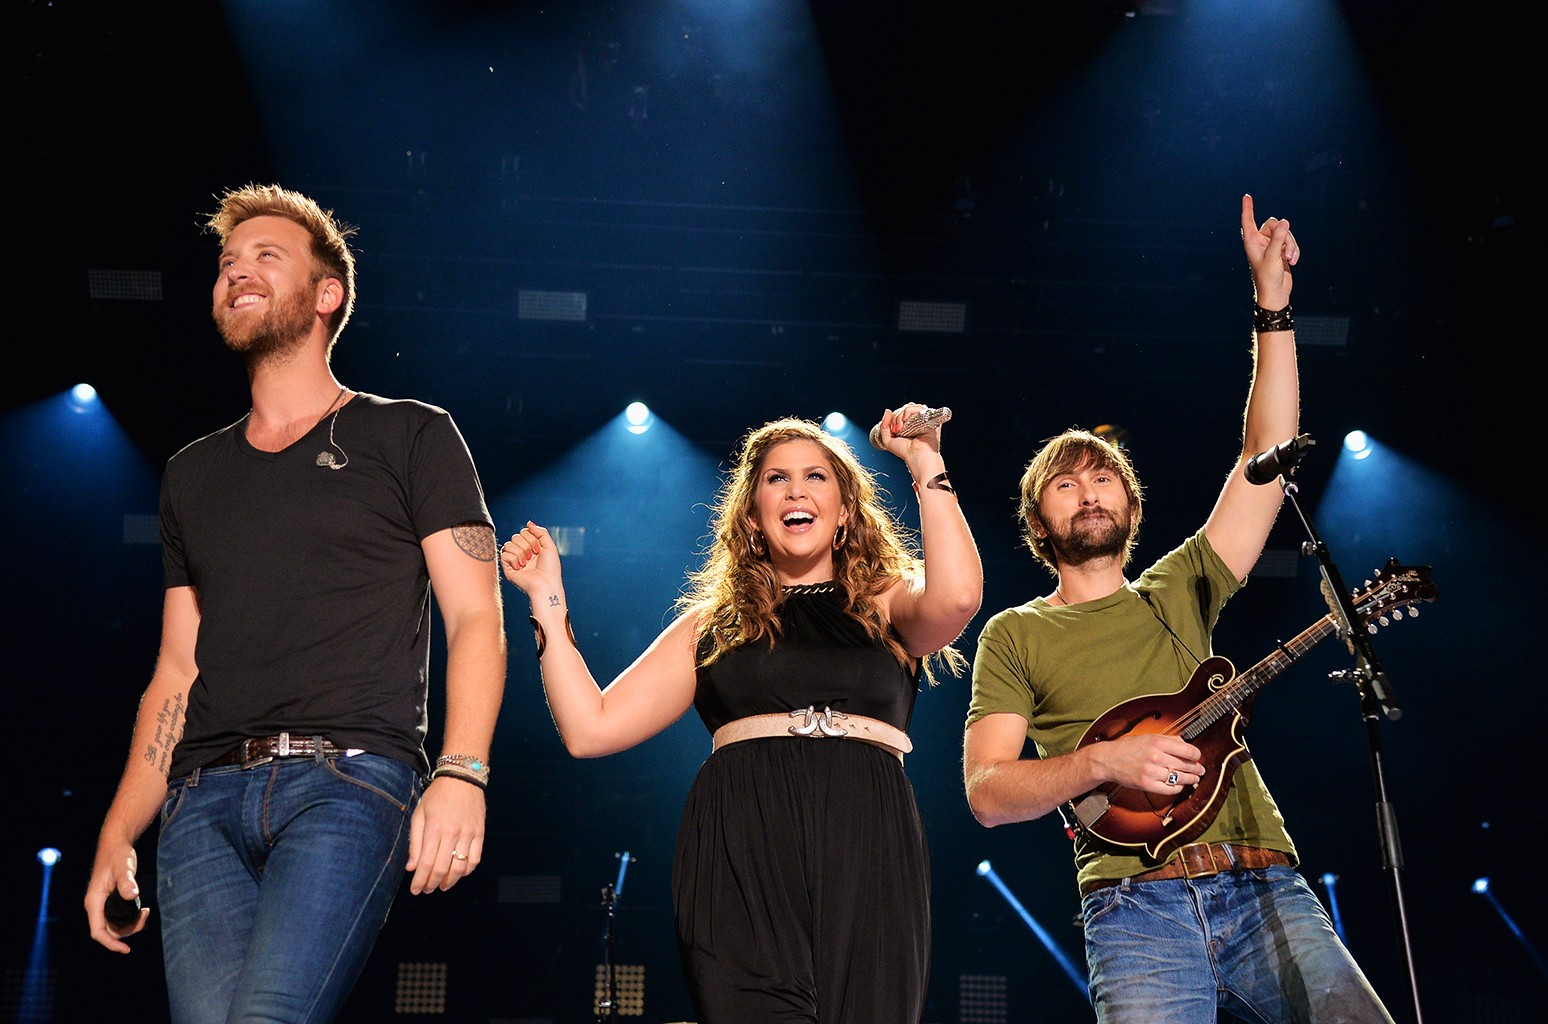 Charles Kelley, Hillary Scott and Dave Haywood of Lady Antebellum perform onstage at the 2014 CMA Festival on June 8, 2014 in Nashville, Tenn.